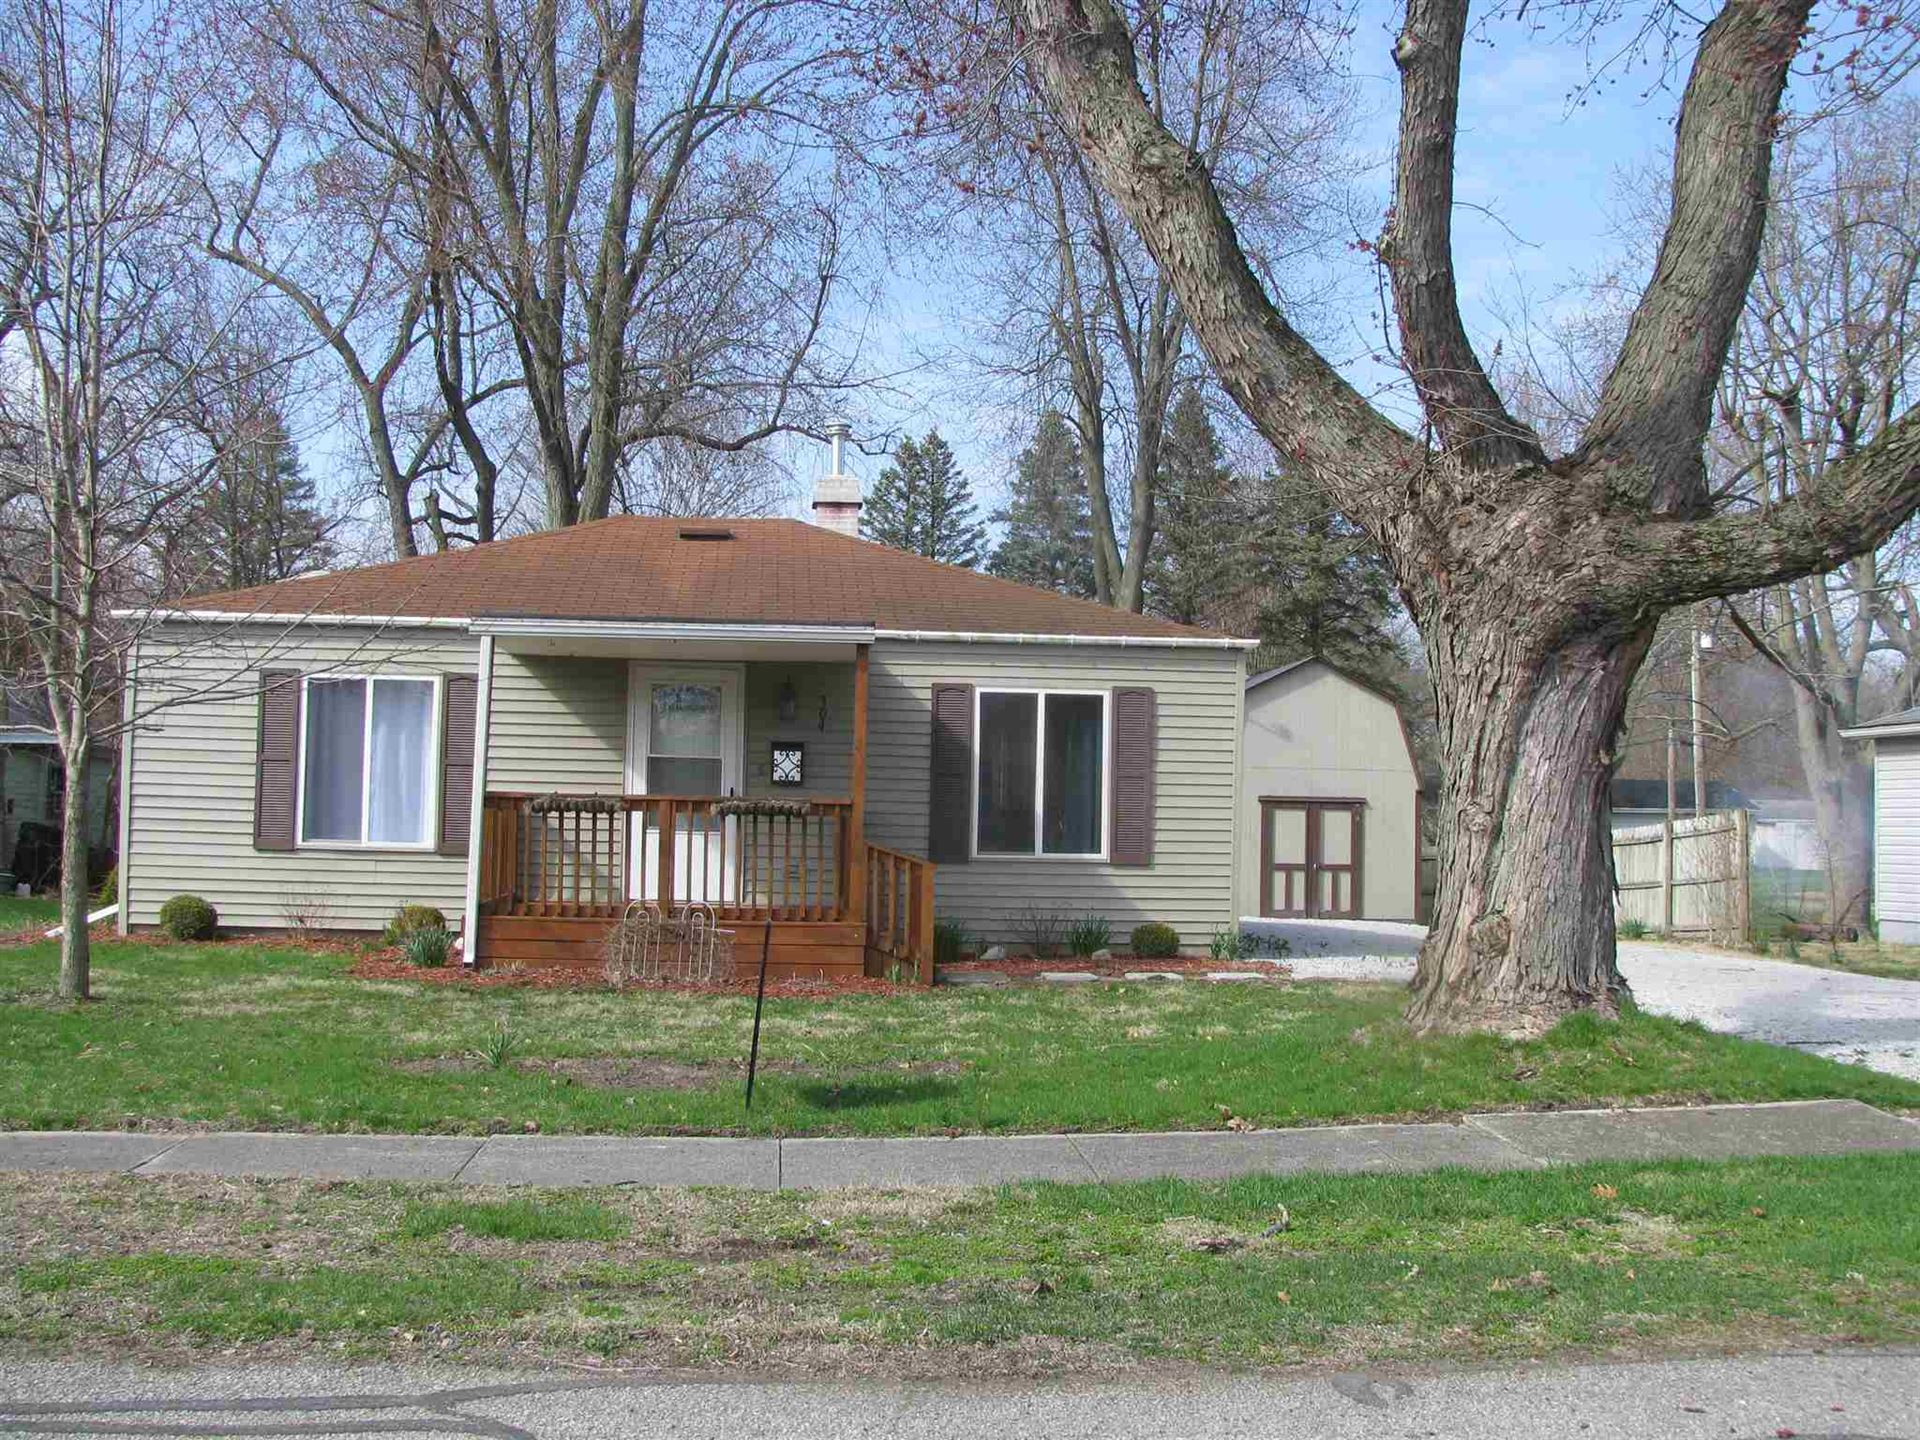 Photo of 304 W 5th Street, North Manchester, IN 46962 (MLS # 202007789)